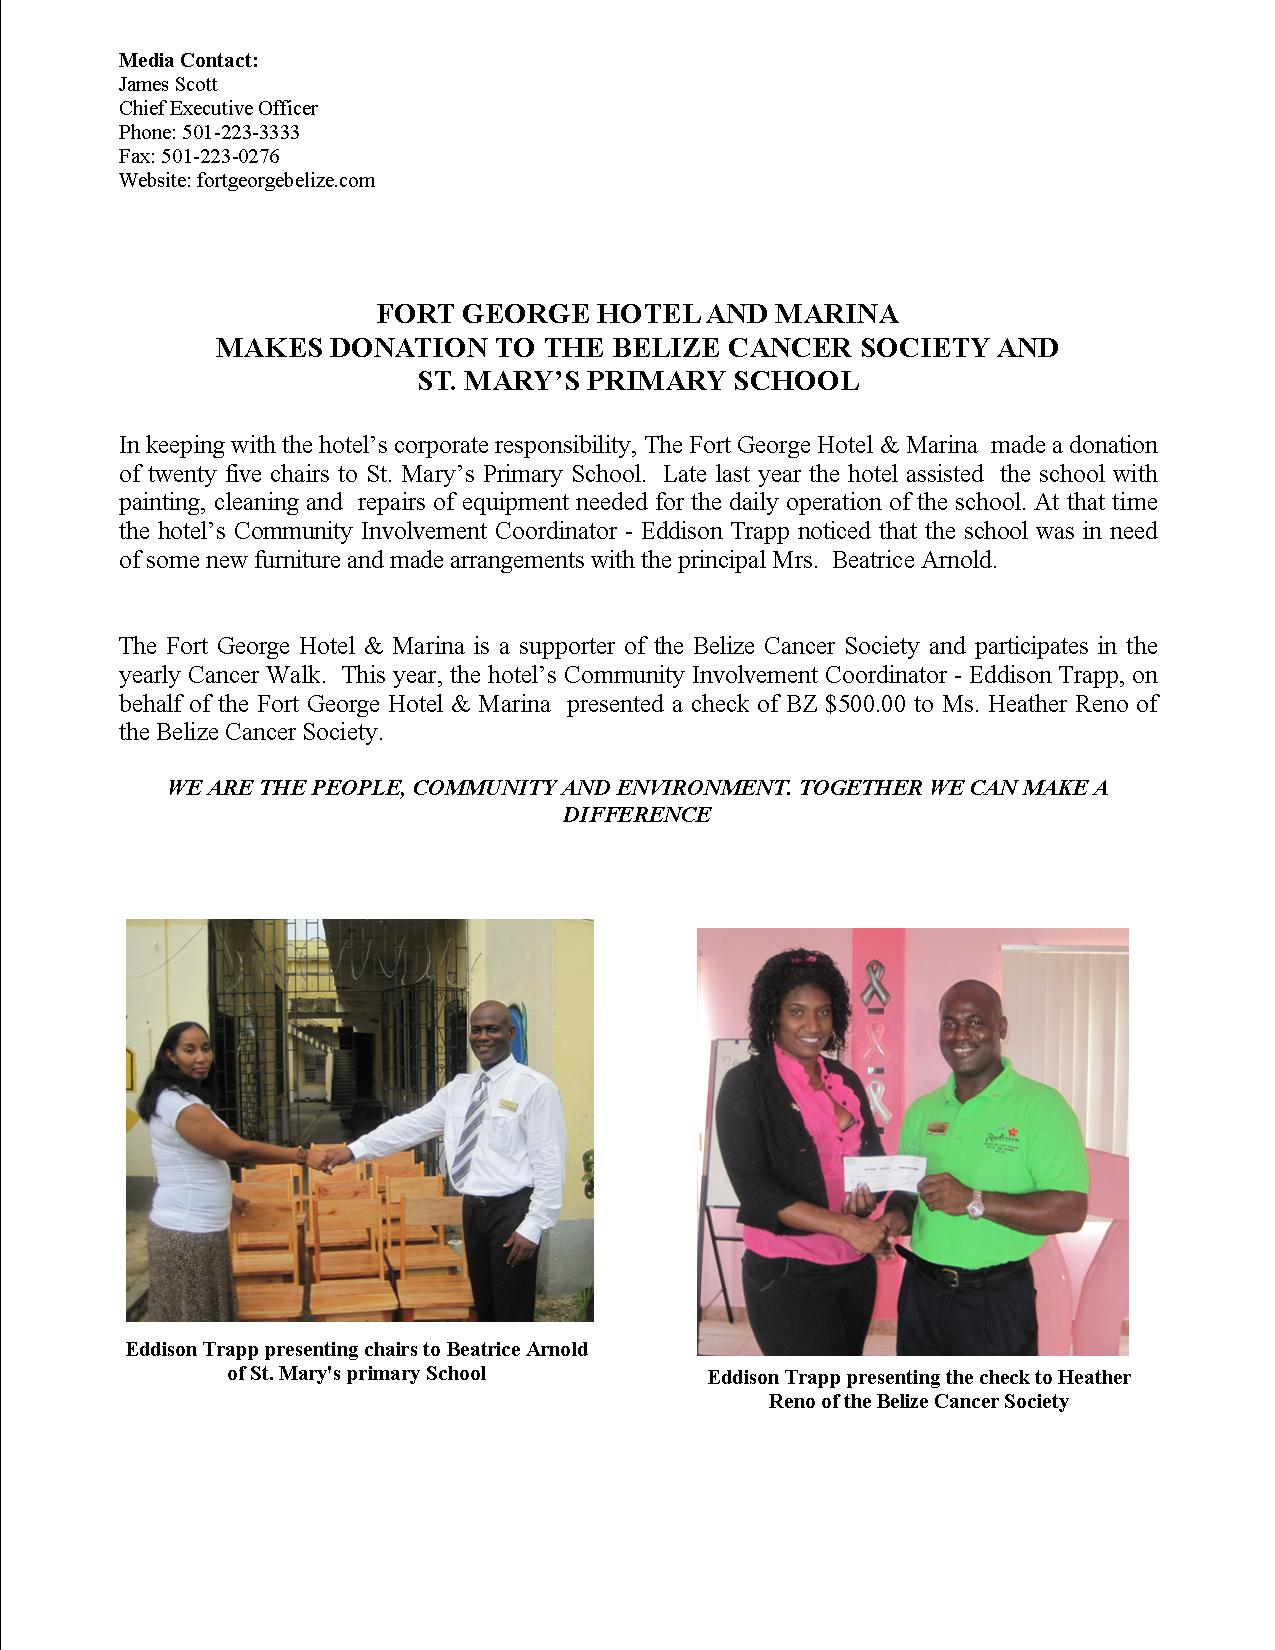 radisson makes a donation to belize cancersociety st. marys - website